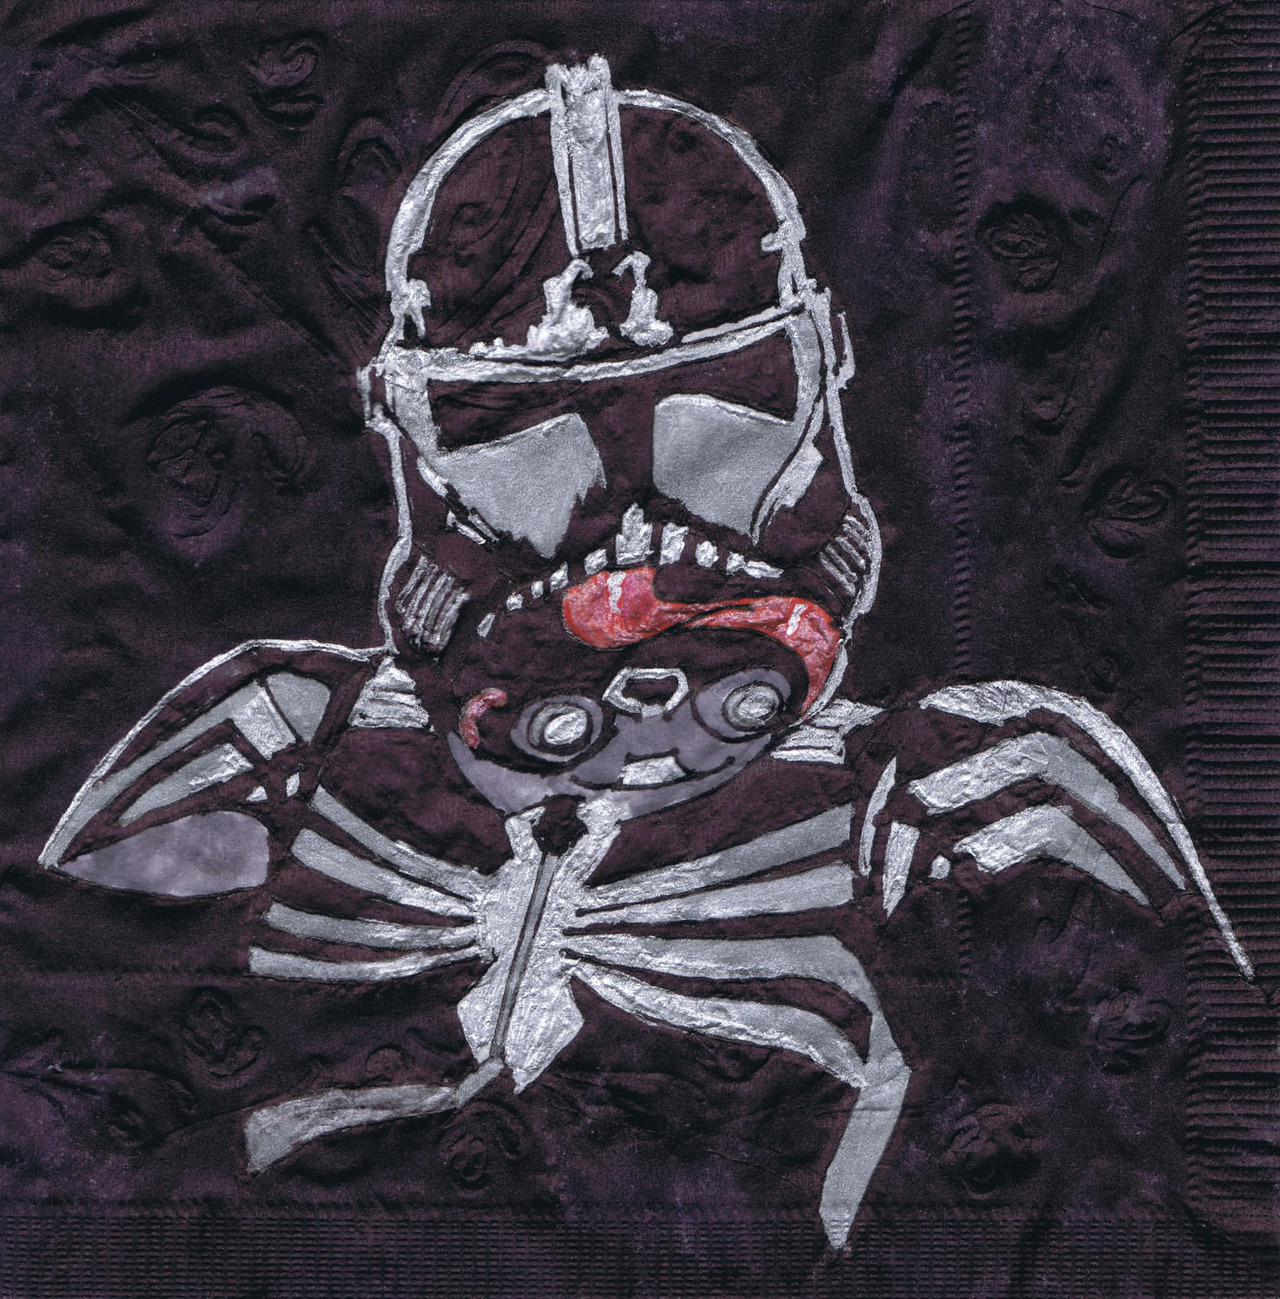 Spidey-trooper.  New napkin art.